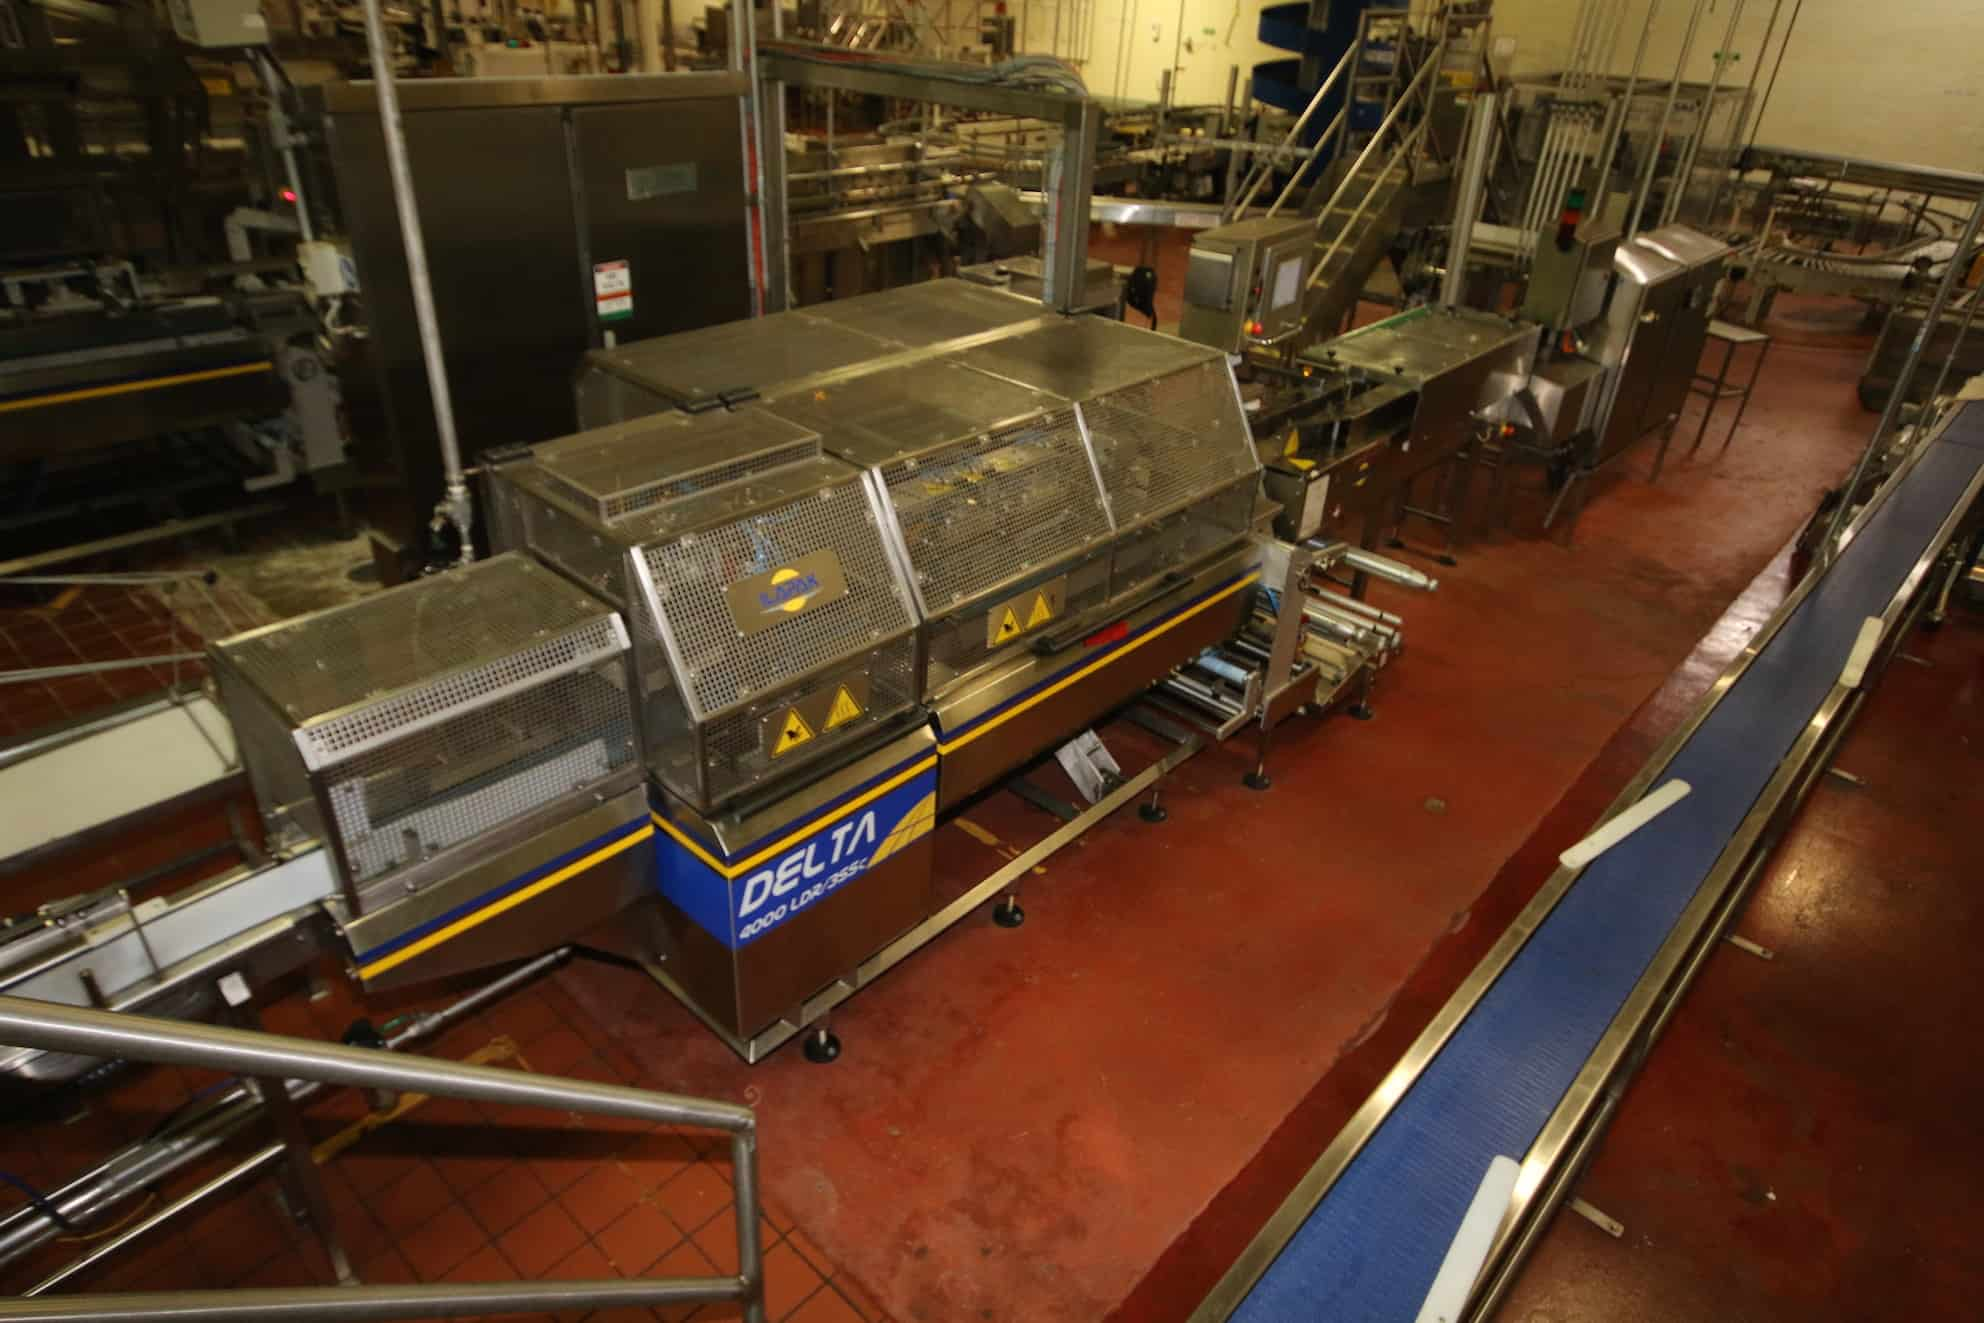 2013 Ilapak Flow Wrapper, Model #Delta4000DR/3SSC, S/N 06402990007 with Controls and Touchpad Display (Pancake Line #5)